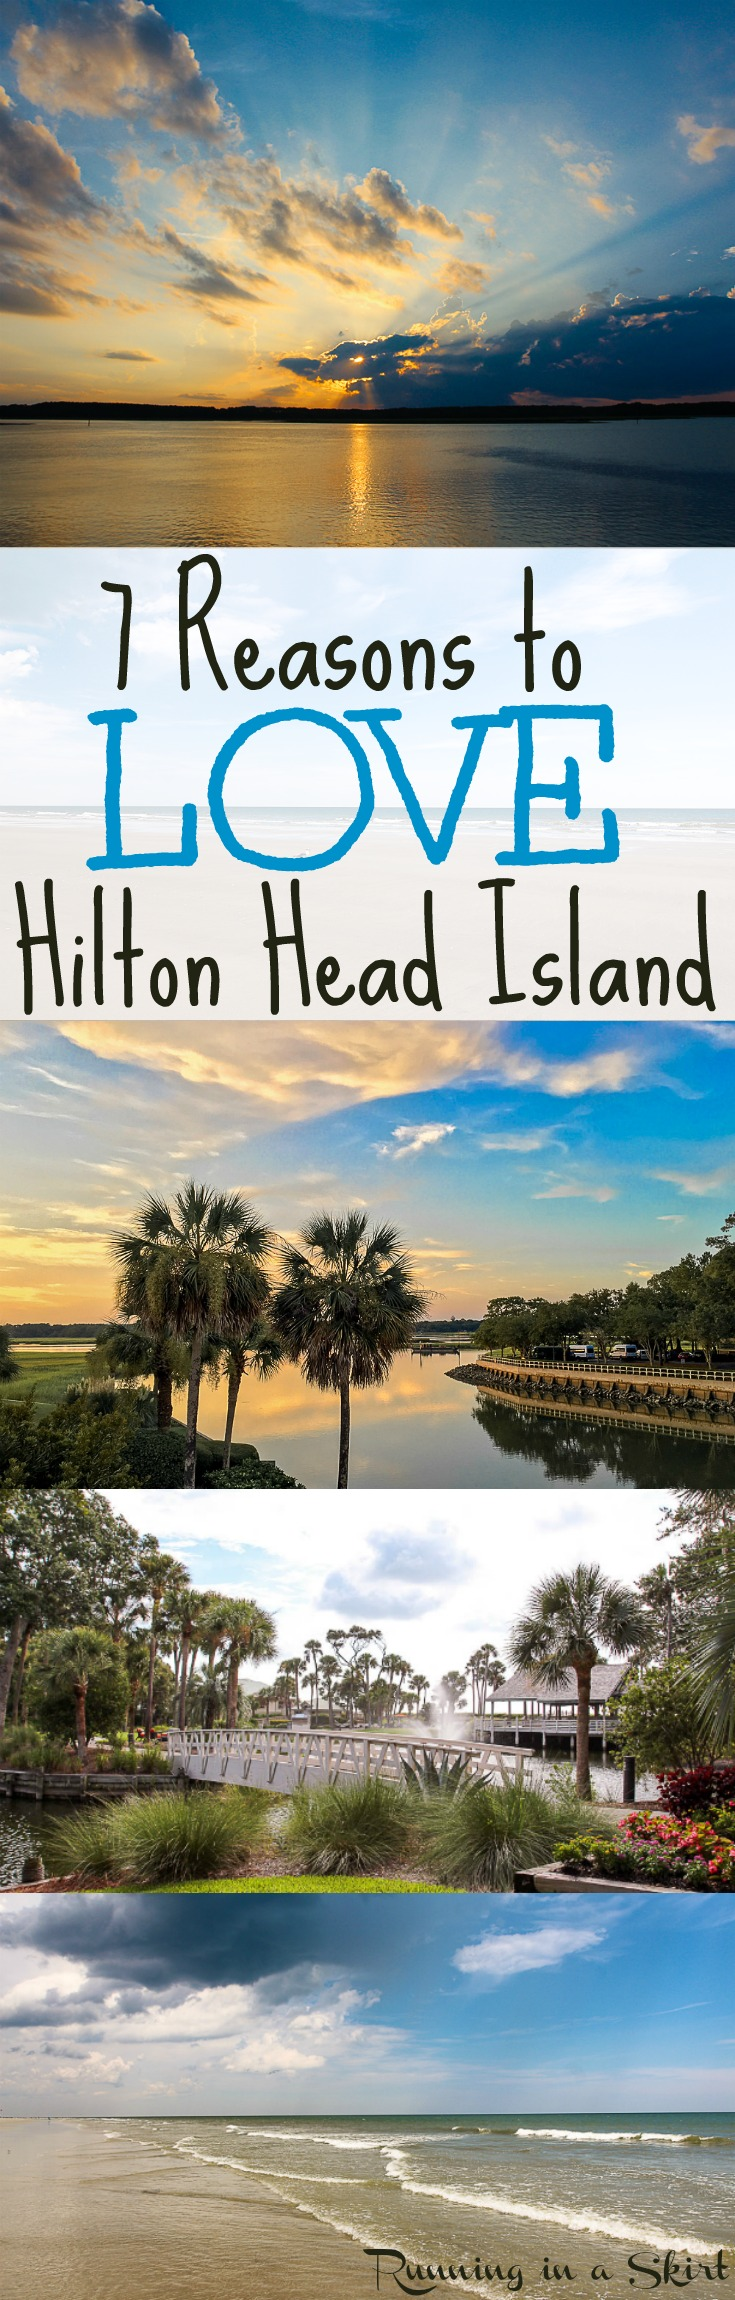 7 Things to Do at Hilton Head